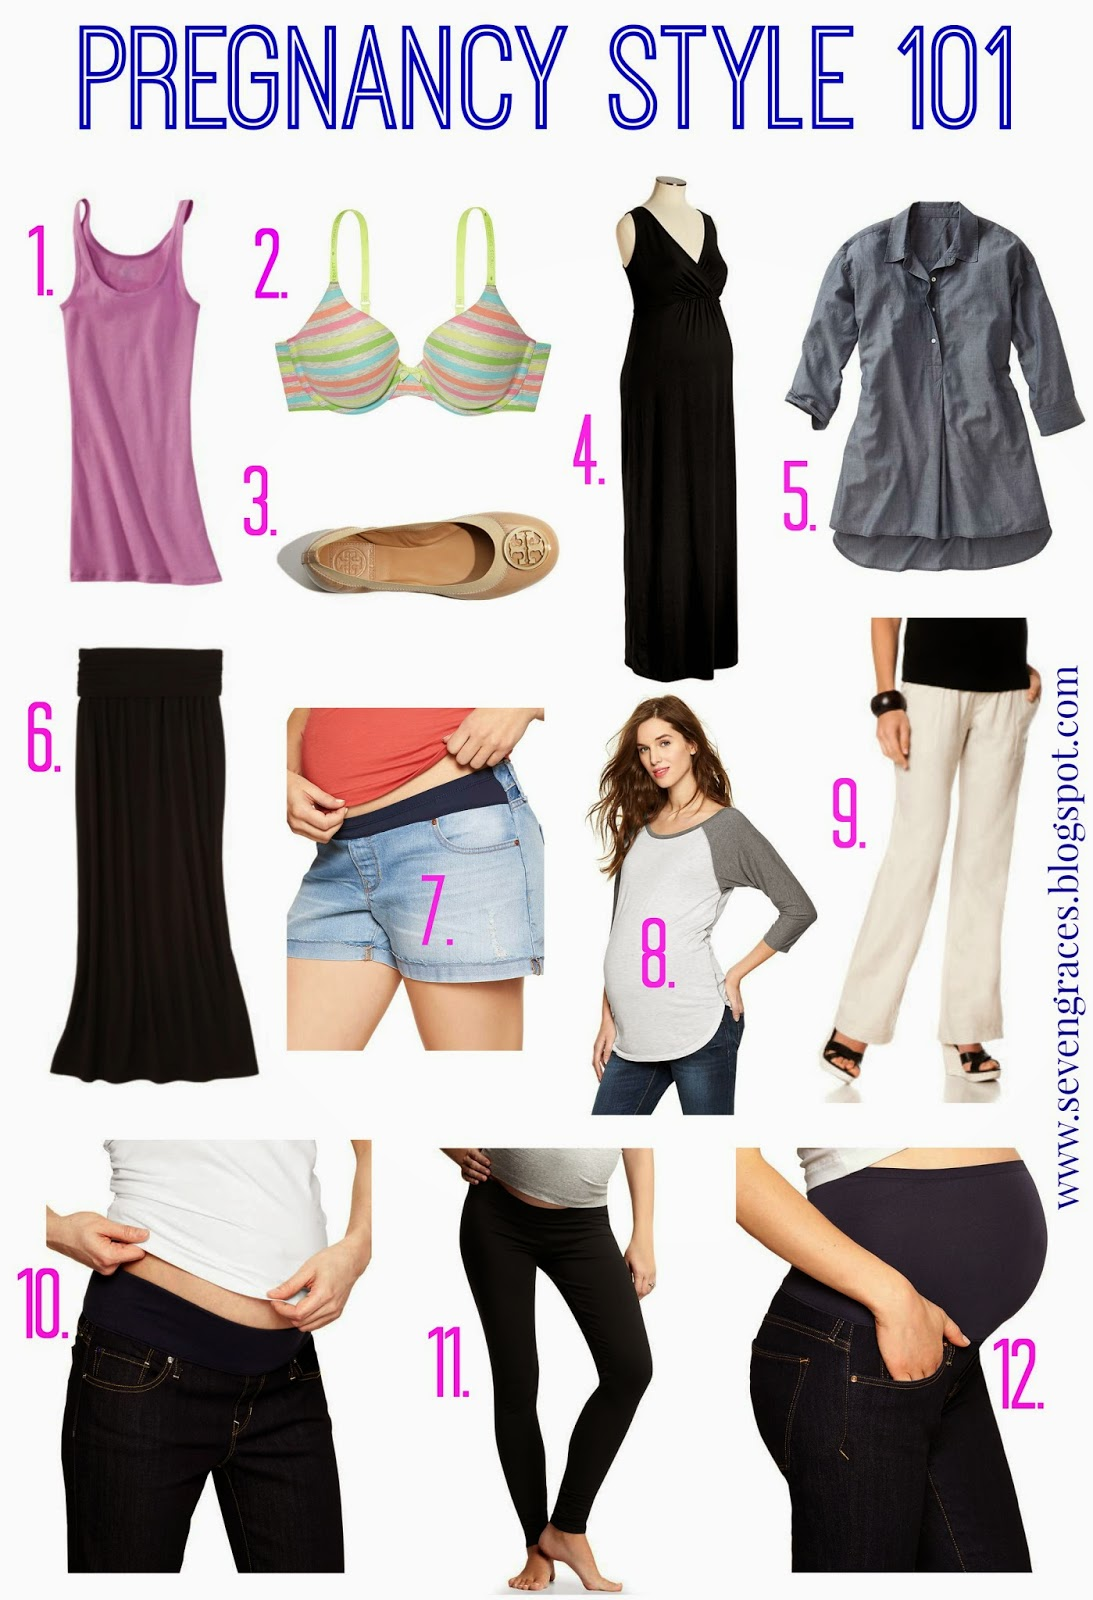 Target Oh Joy Pregnancy Style 101 Must Have Maternity Clothing Seven